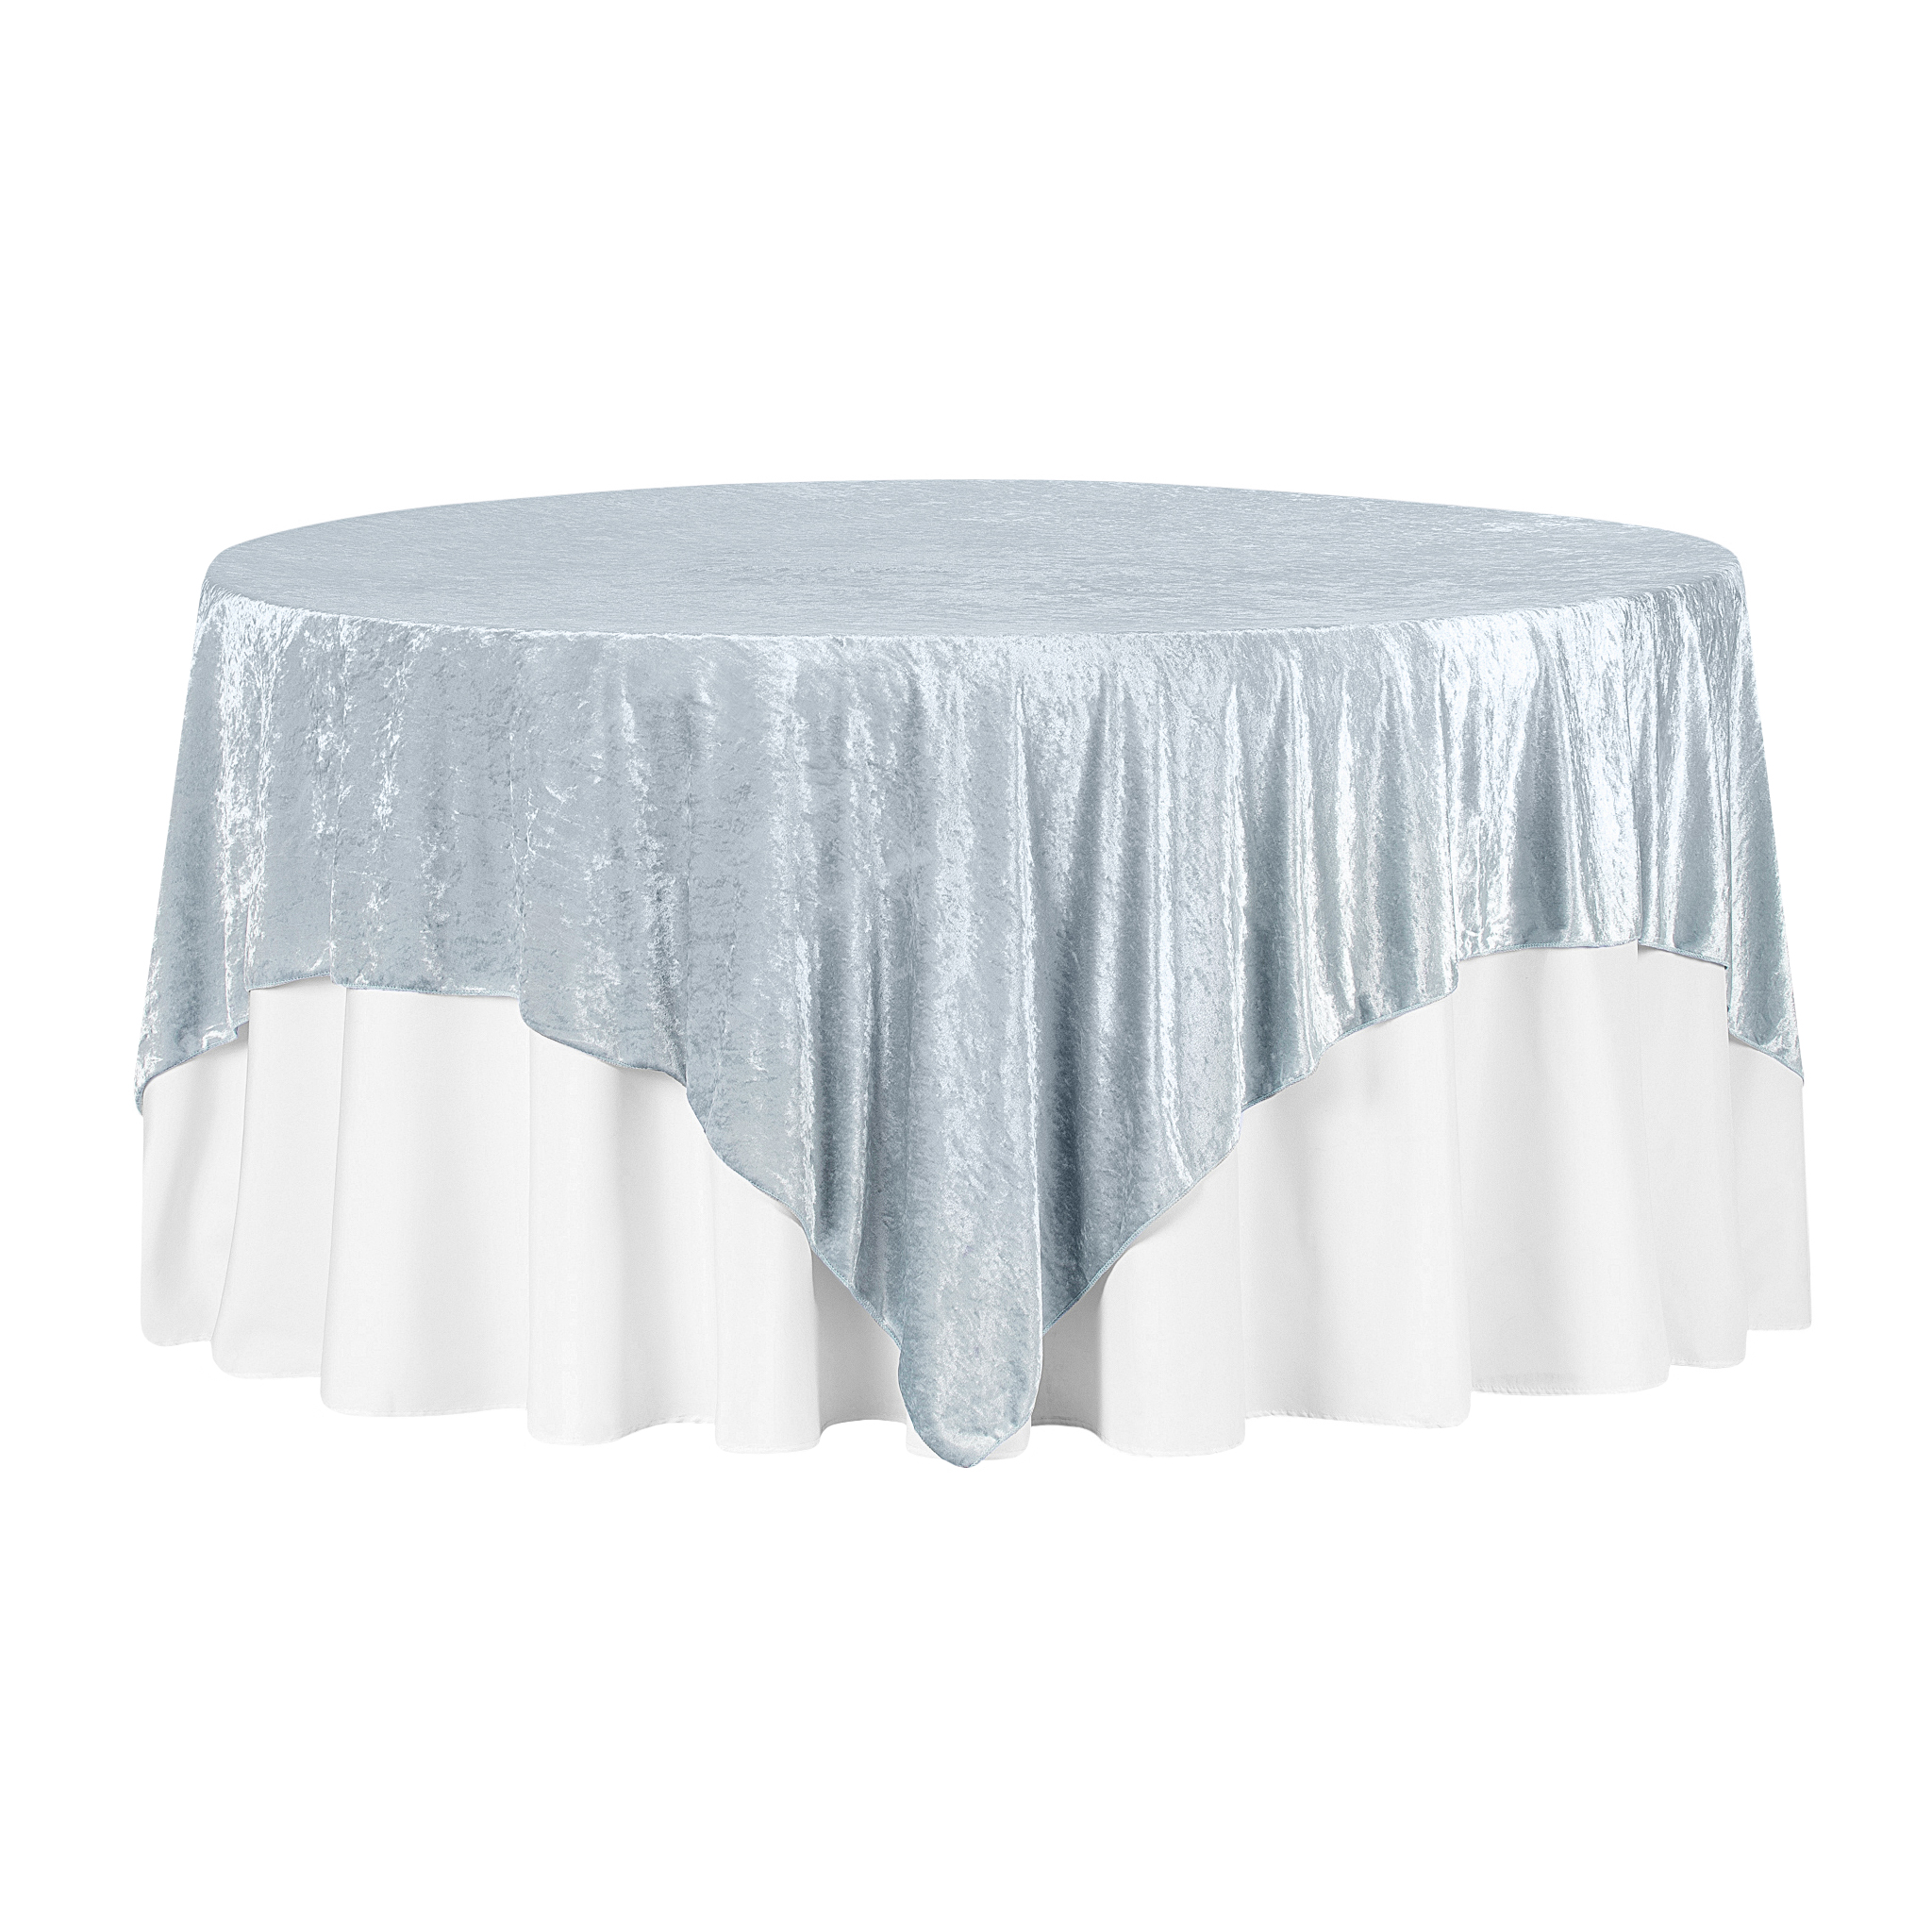 """Velvet 85""""x85"""" Square Tablecloth Table Overlay Dusty"""